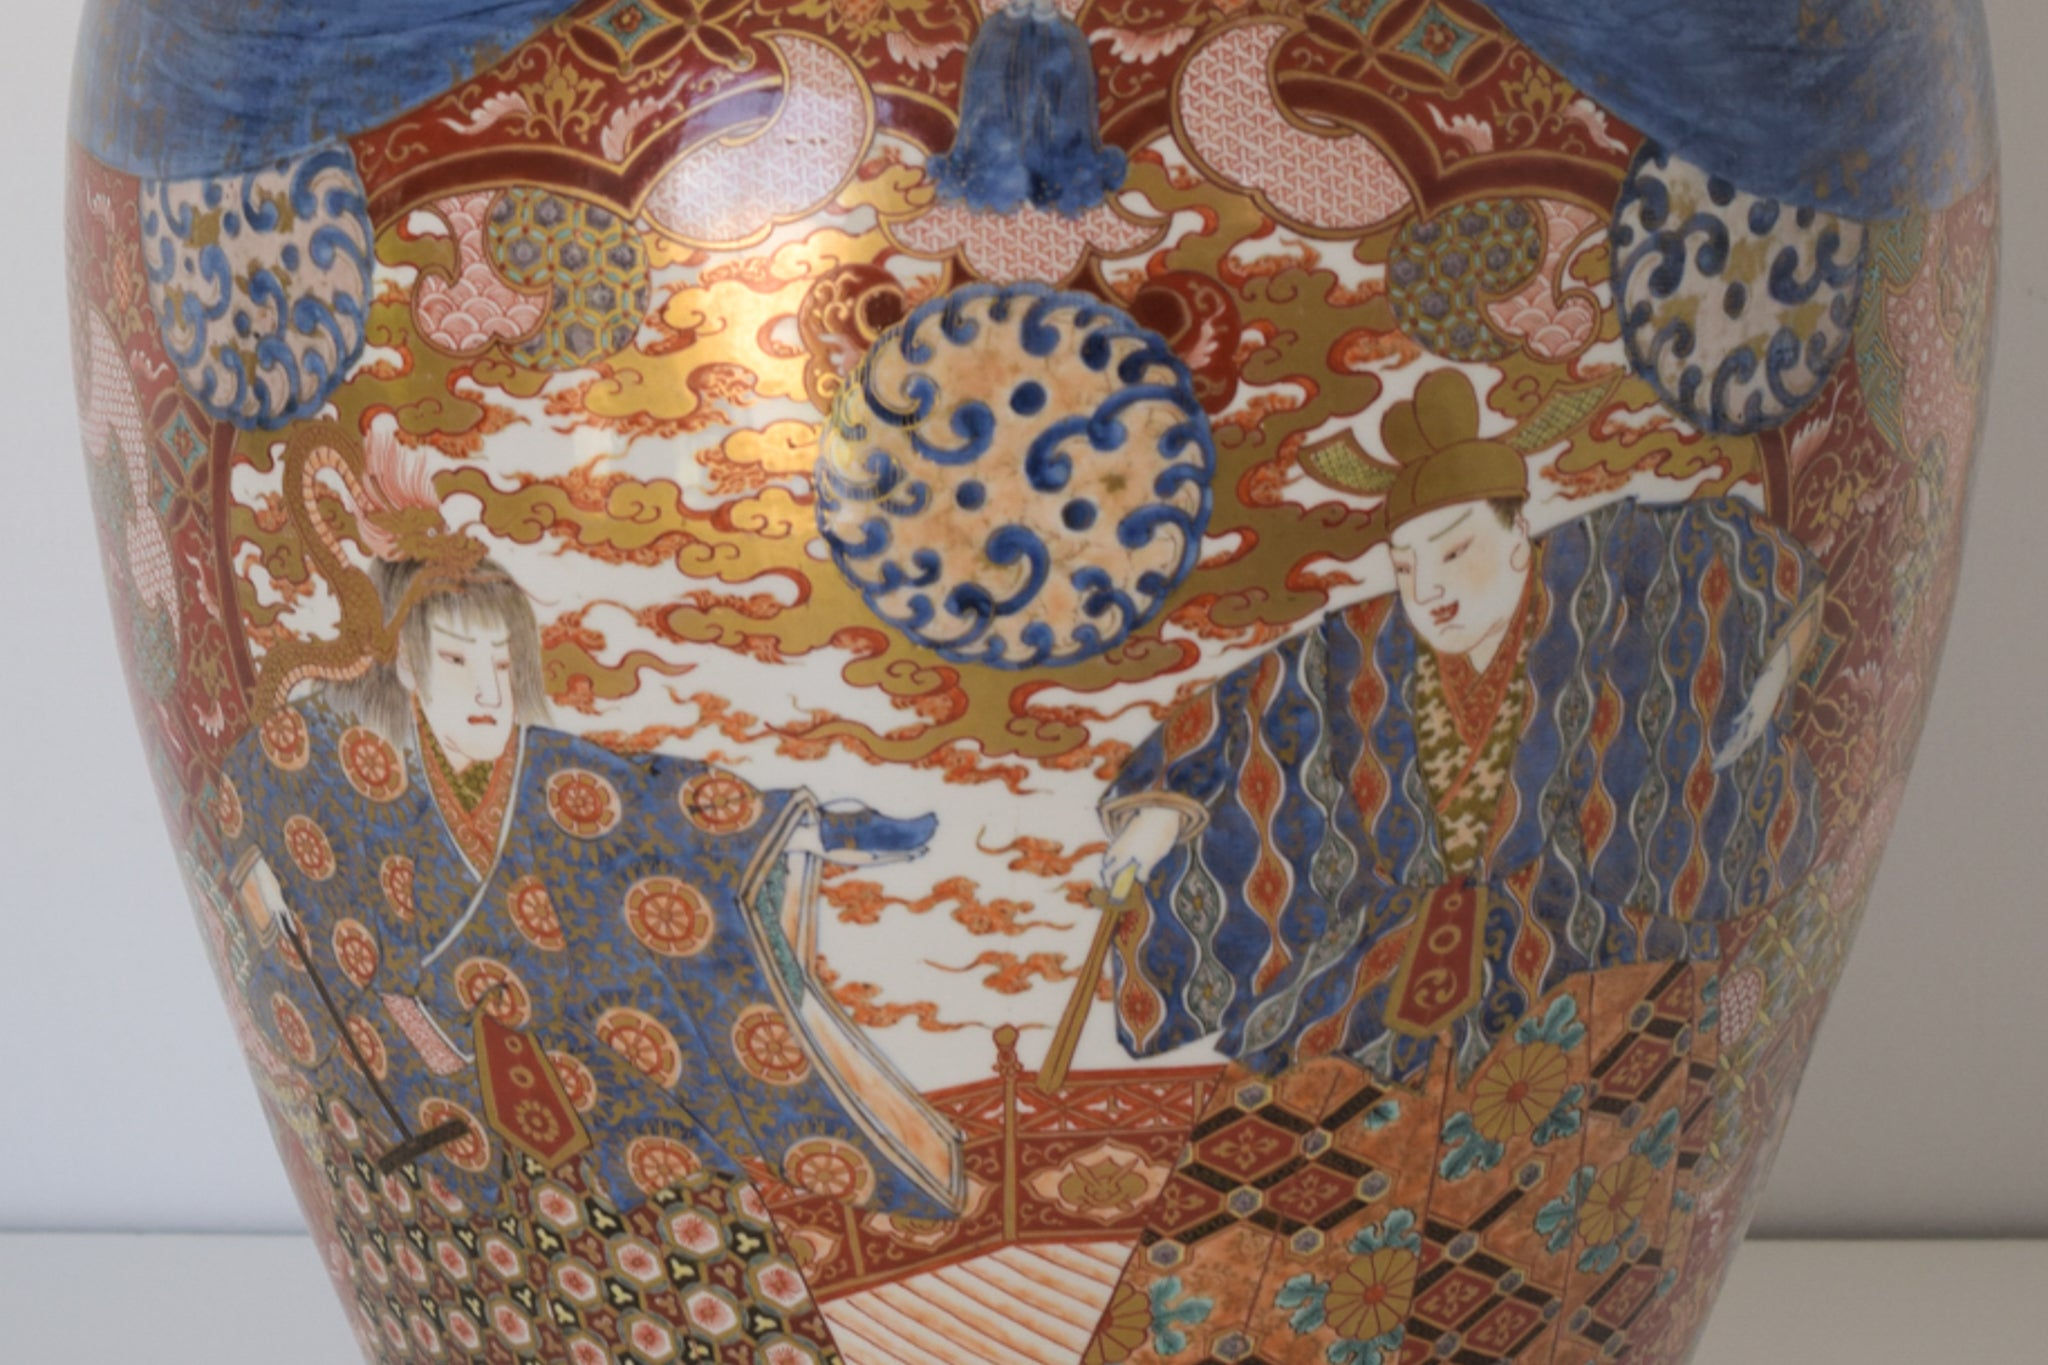 Large Arita Jar and Lid decorated with images of Samurais and Geishas_Detail 4